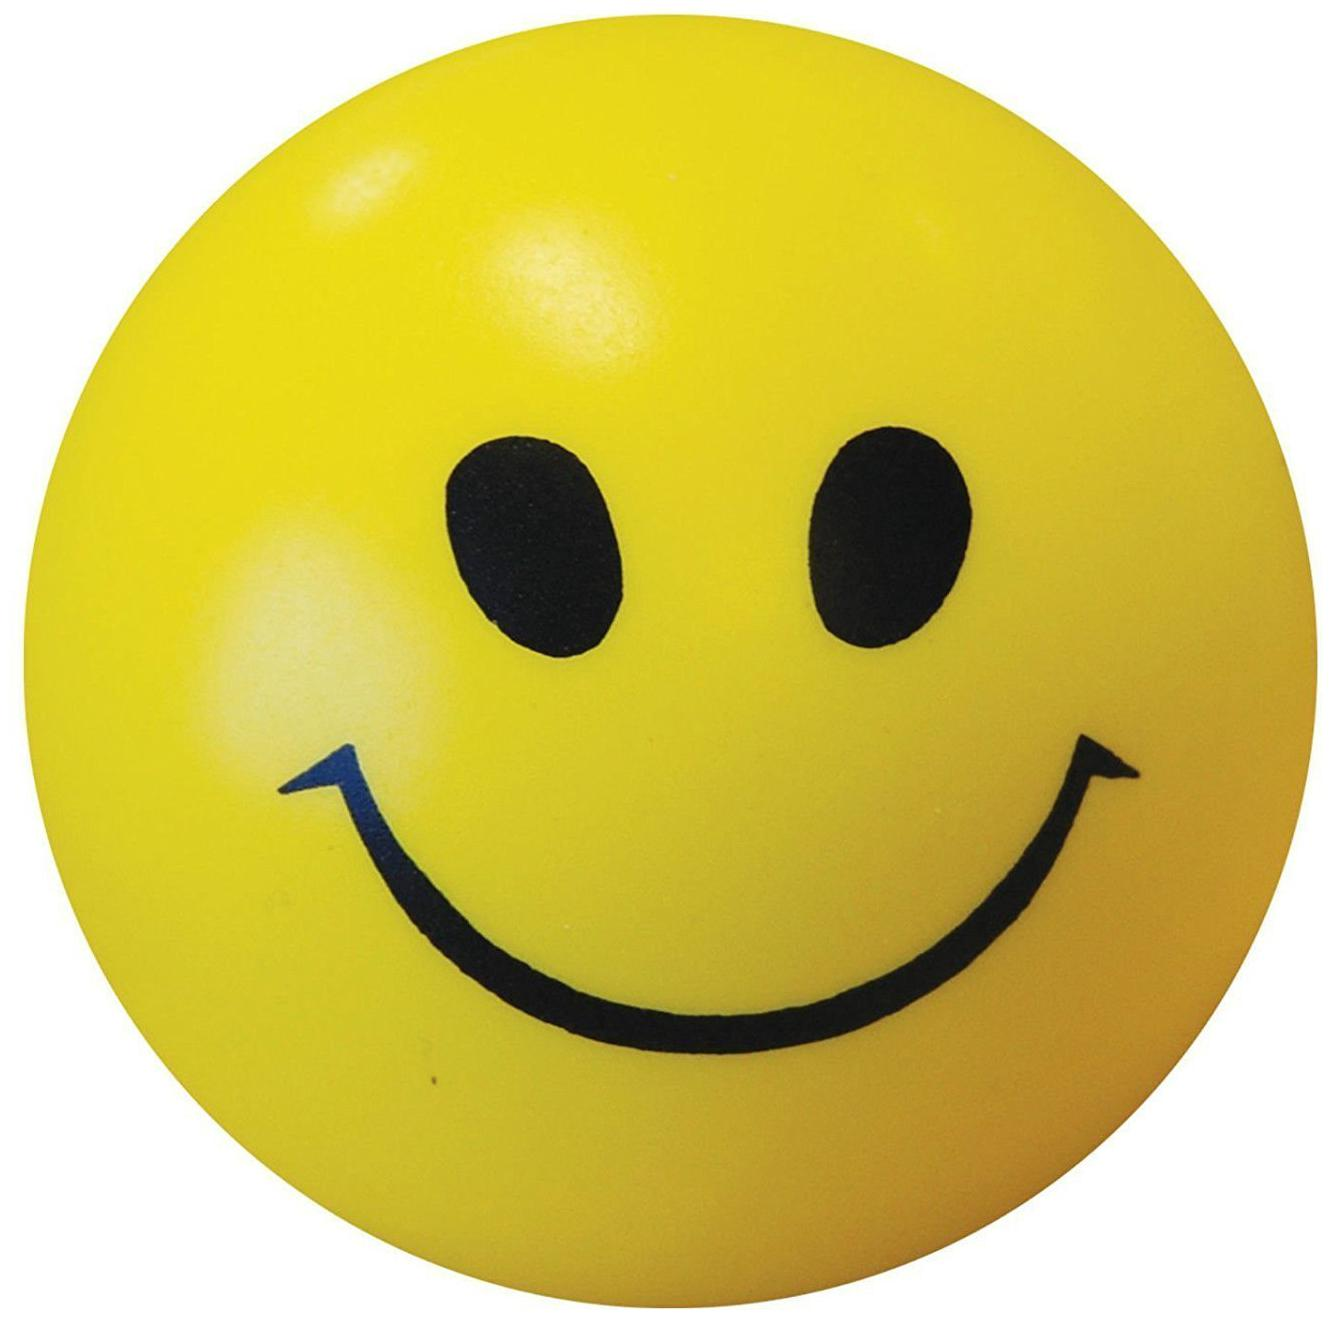 https://assetscdn1.paytm.com/images/catalog/product/K/KI/KIDKTRS-SMILEY-SKSE114067692862CDC/1568289316410_0..jpg